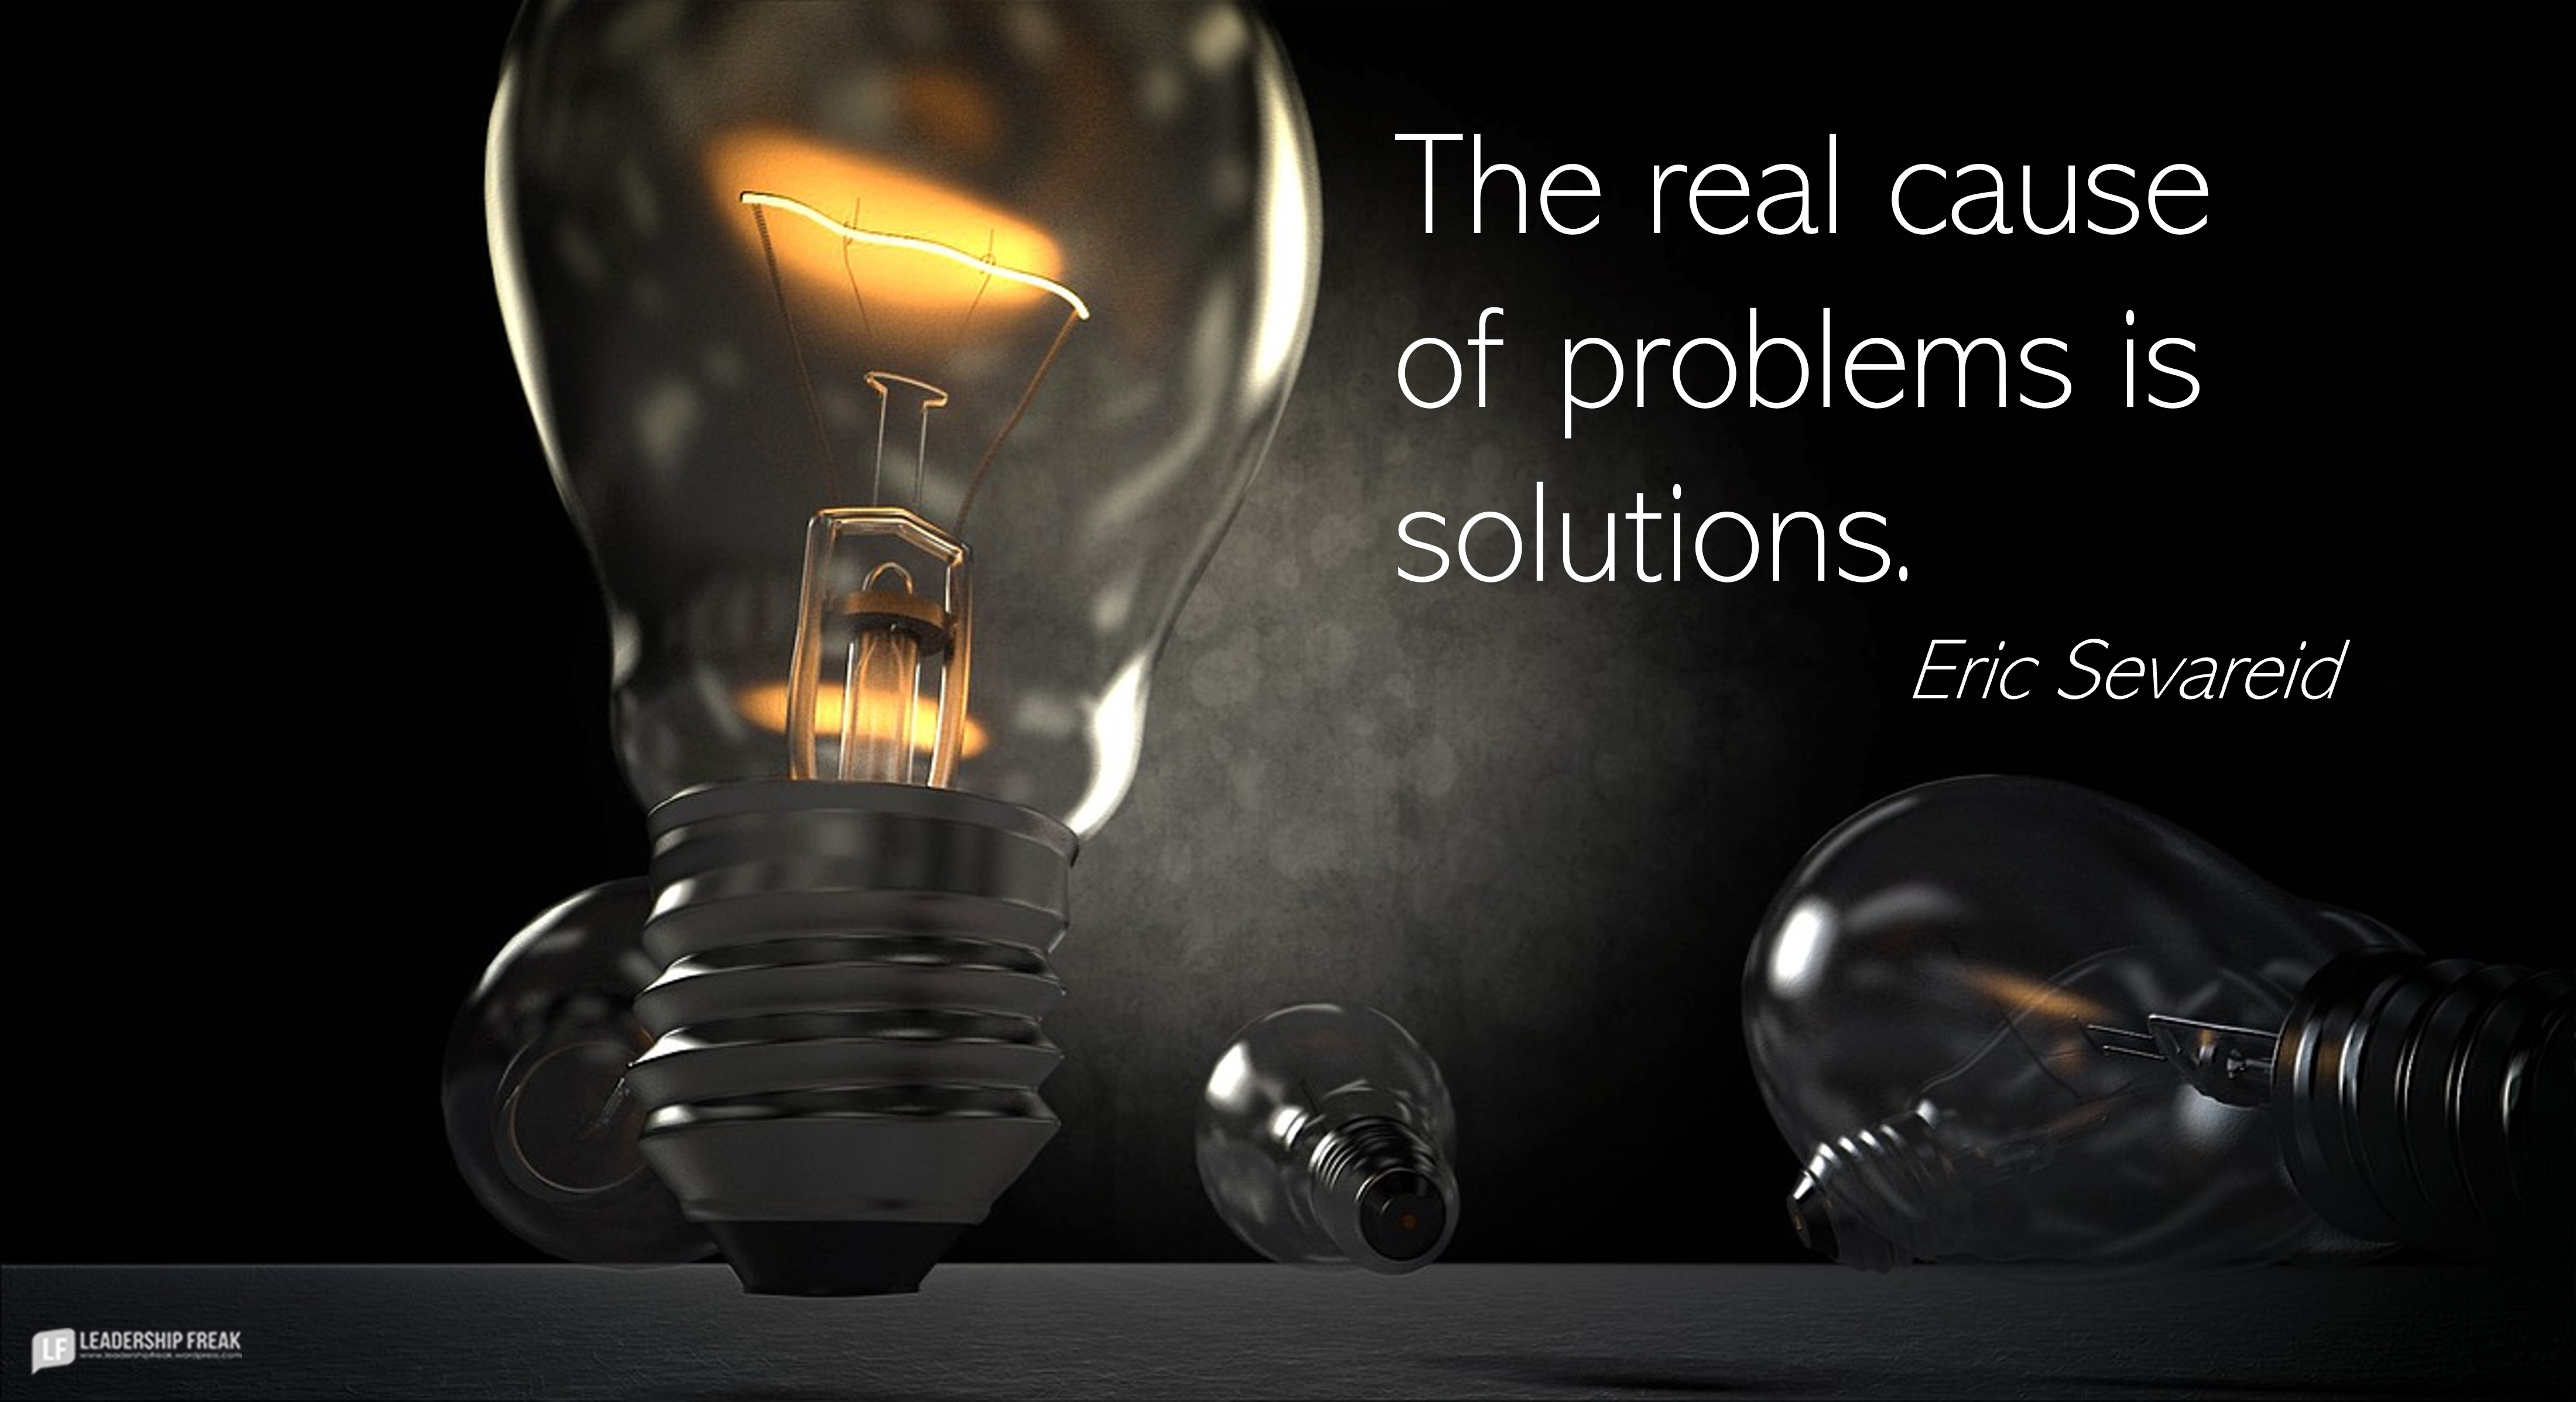 Lightbulb   The real cause of problems is solutions.